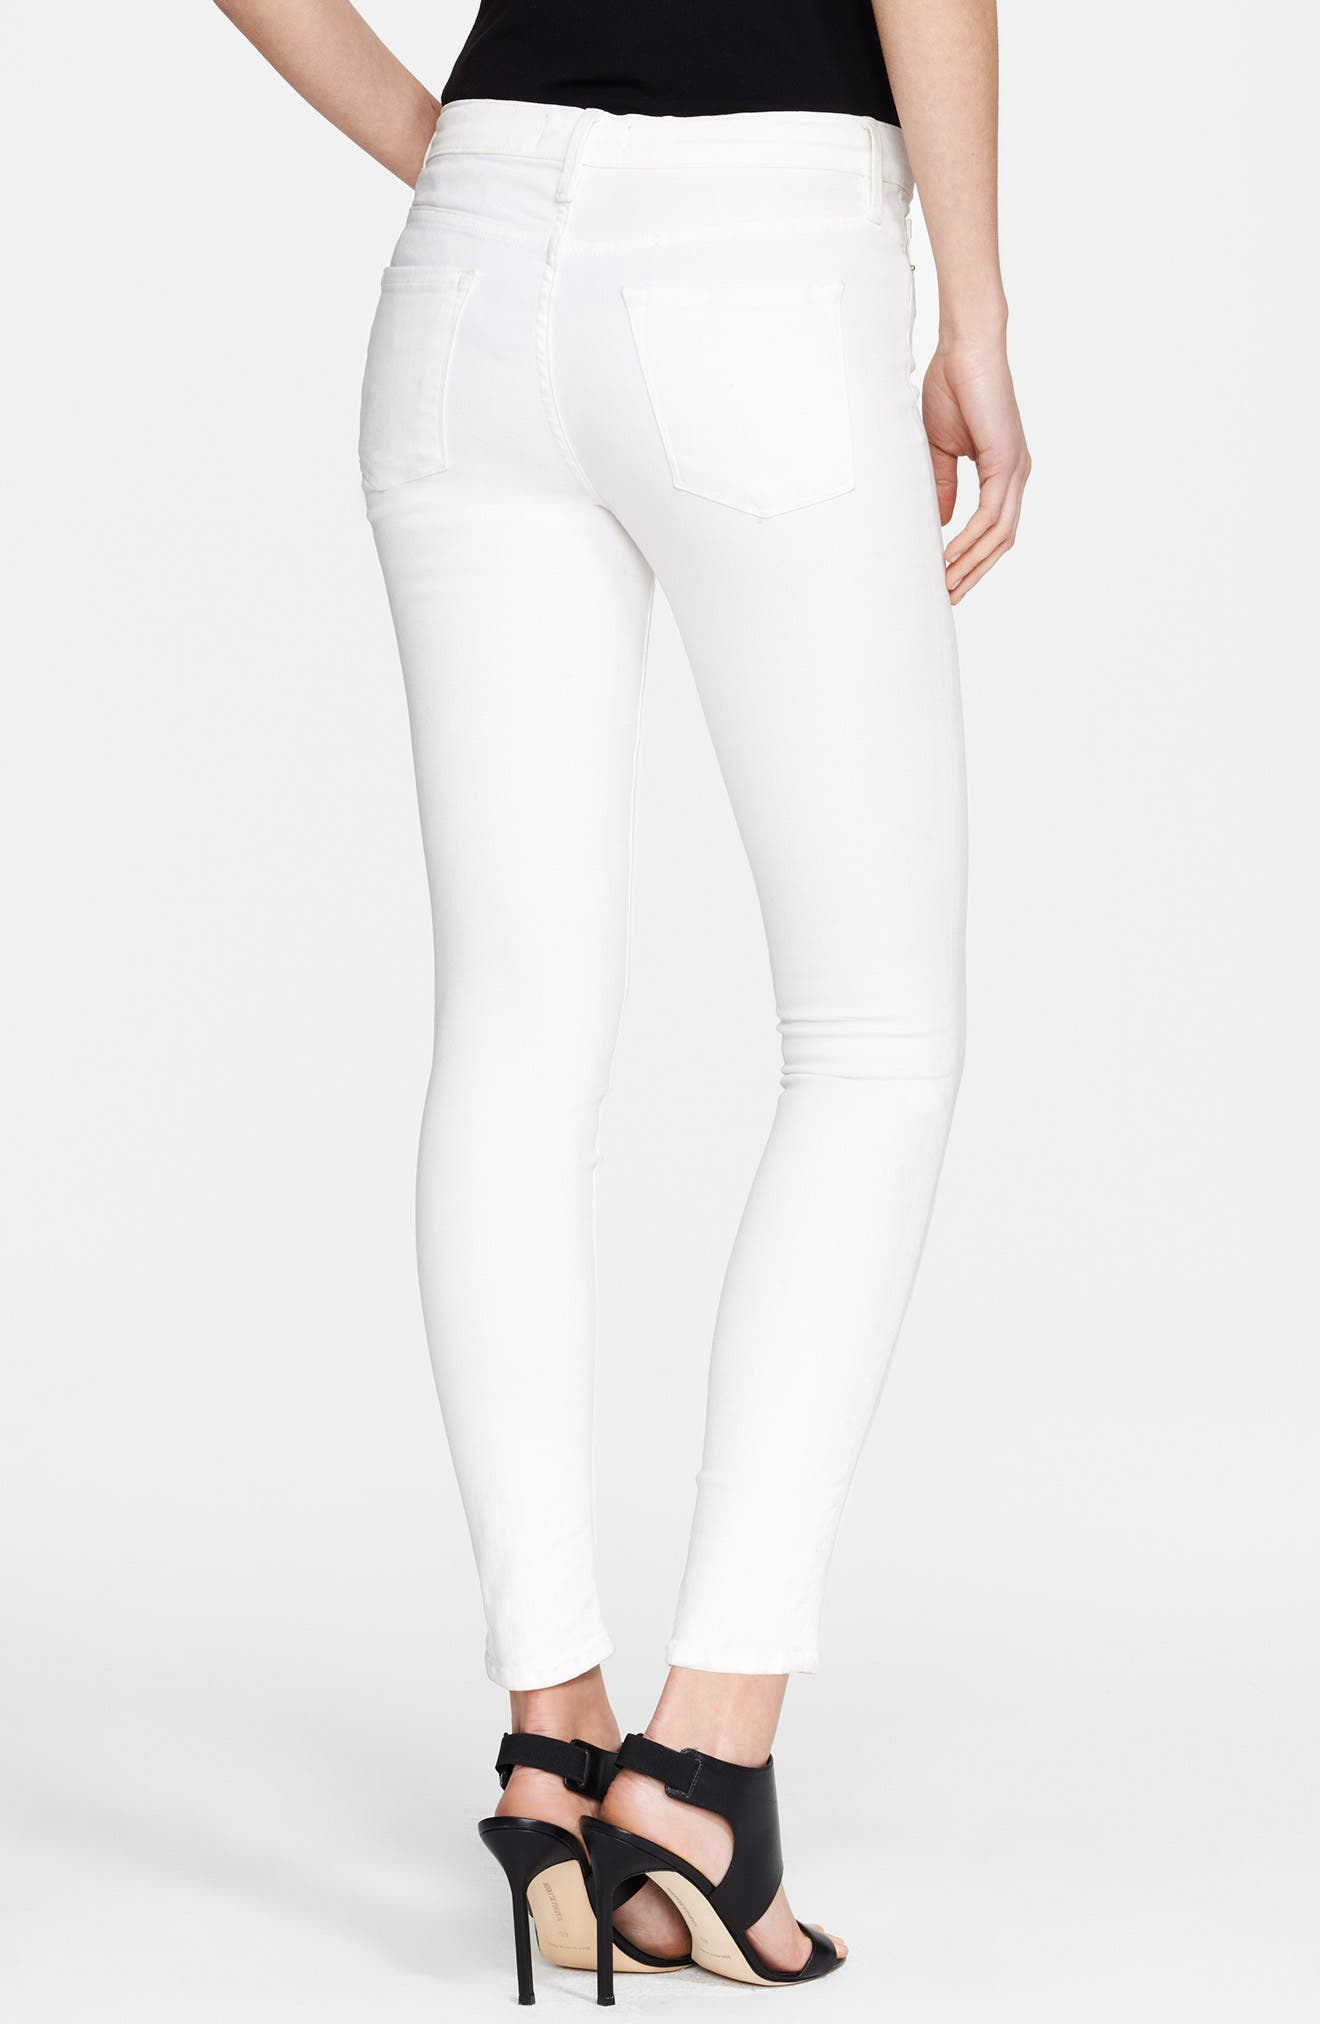 Le Color Skinny Jeans,                             Alternate thumbnail 3, color,                             BLANC